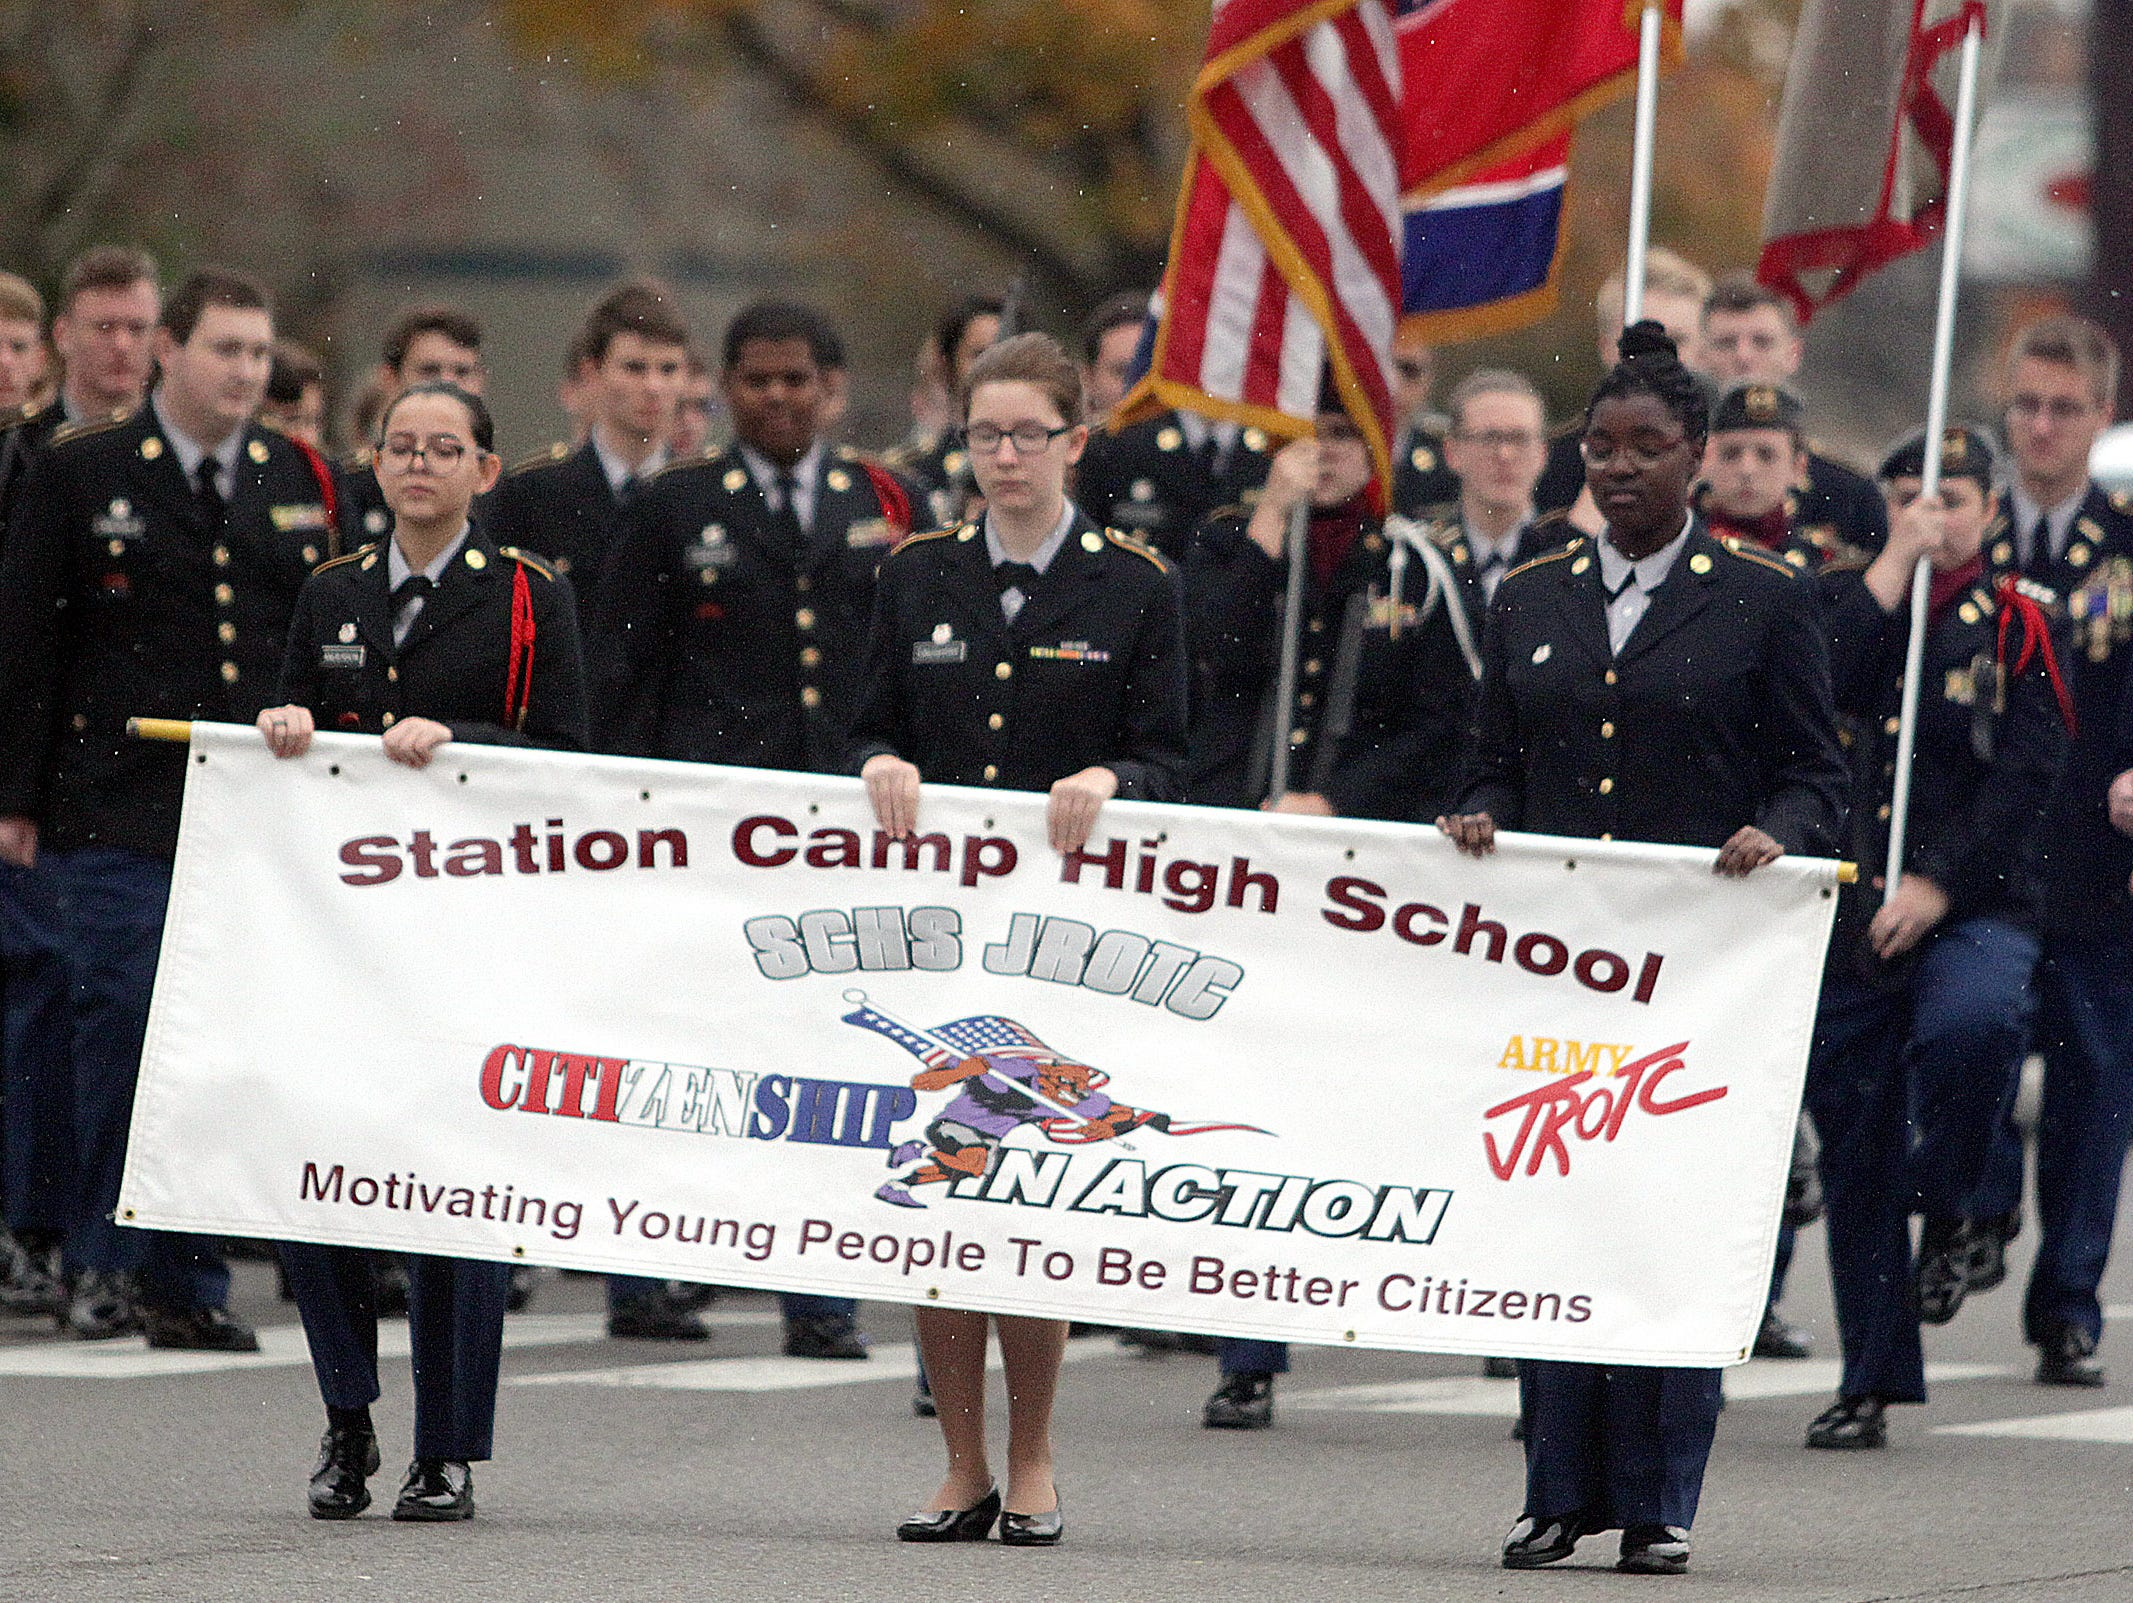 The Station Camp High School Band marches in the Veterans Day Parade in Hendersonville, TN on Sunday, November 4, 2018.